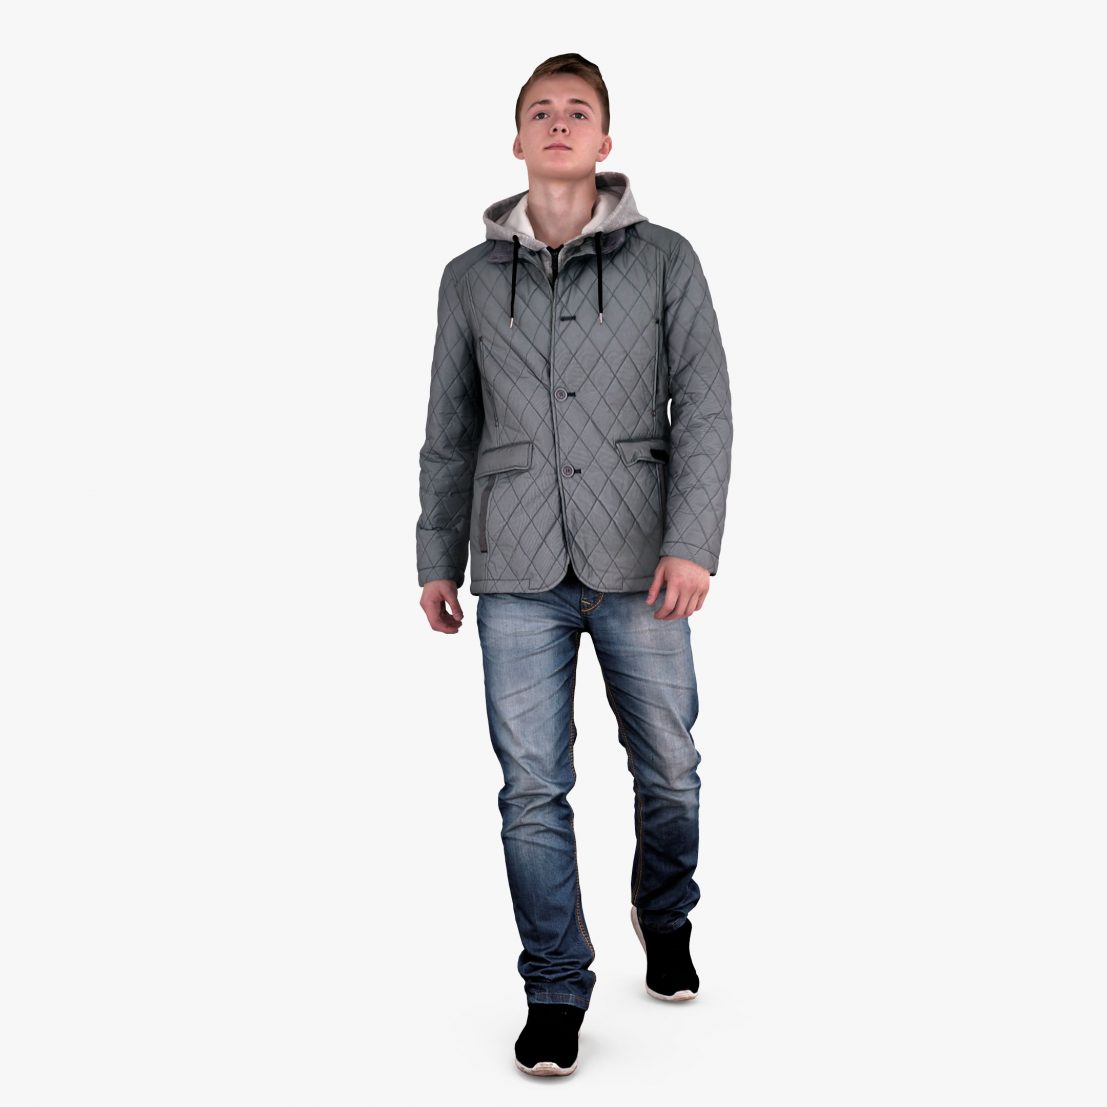 Casual Guy Winter 3D Model | 3DTree Scanning Studio